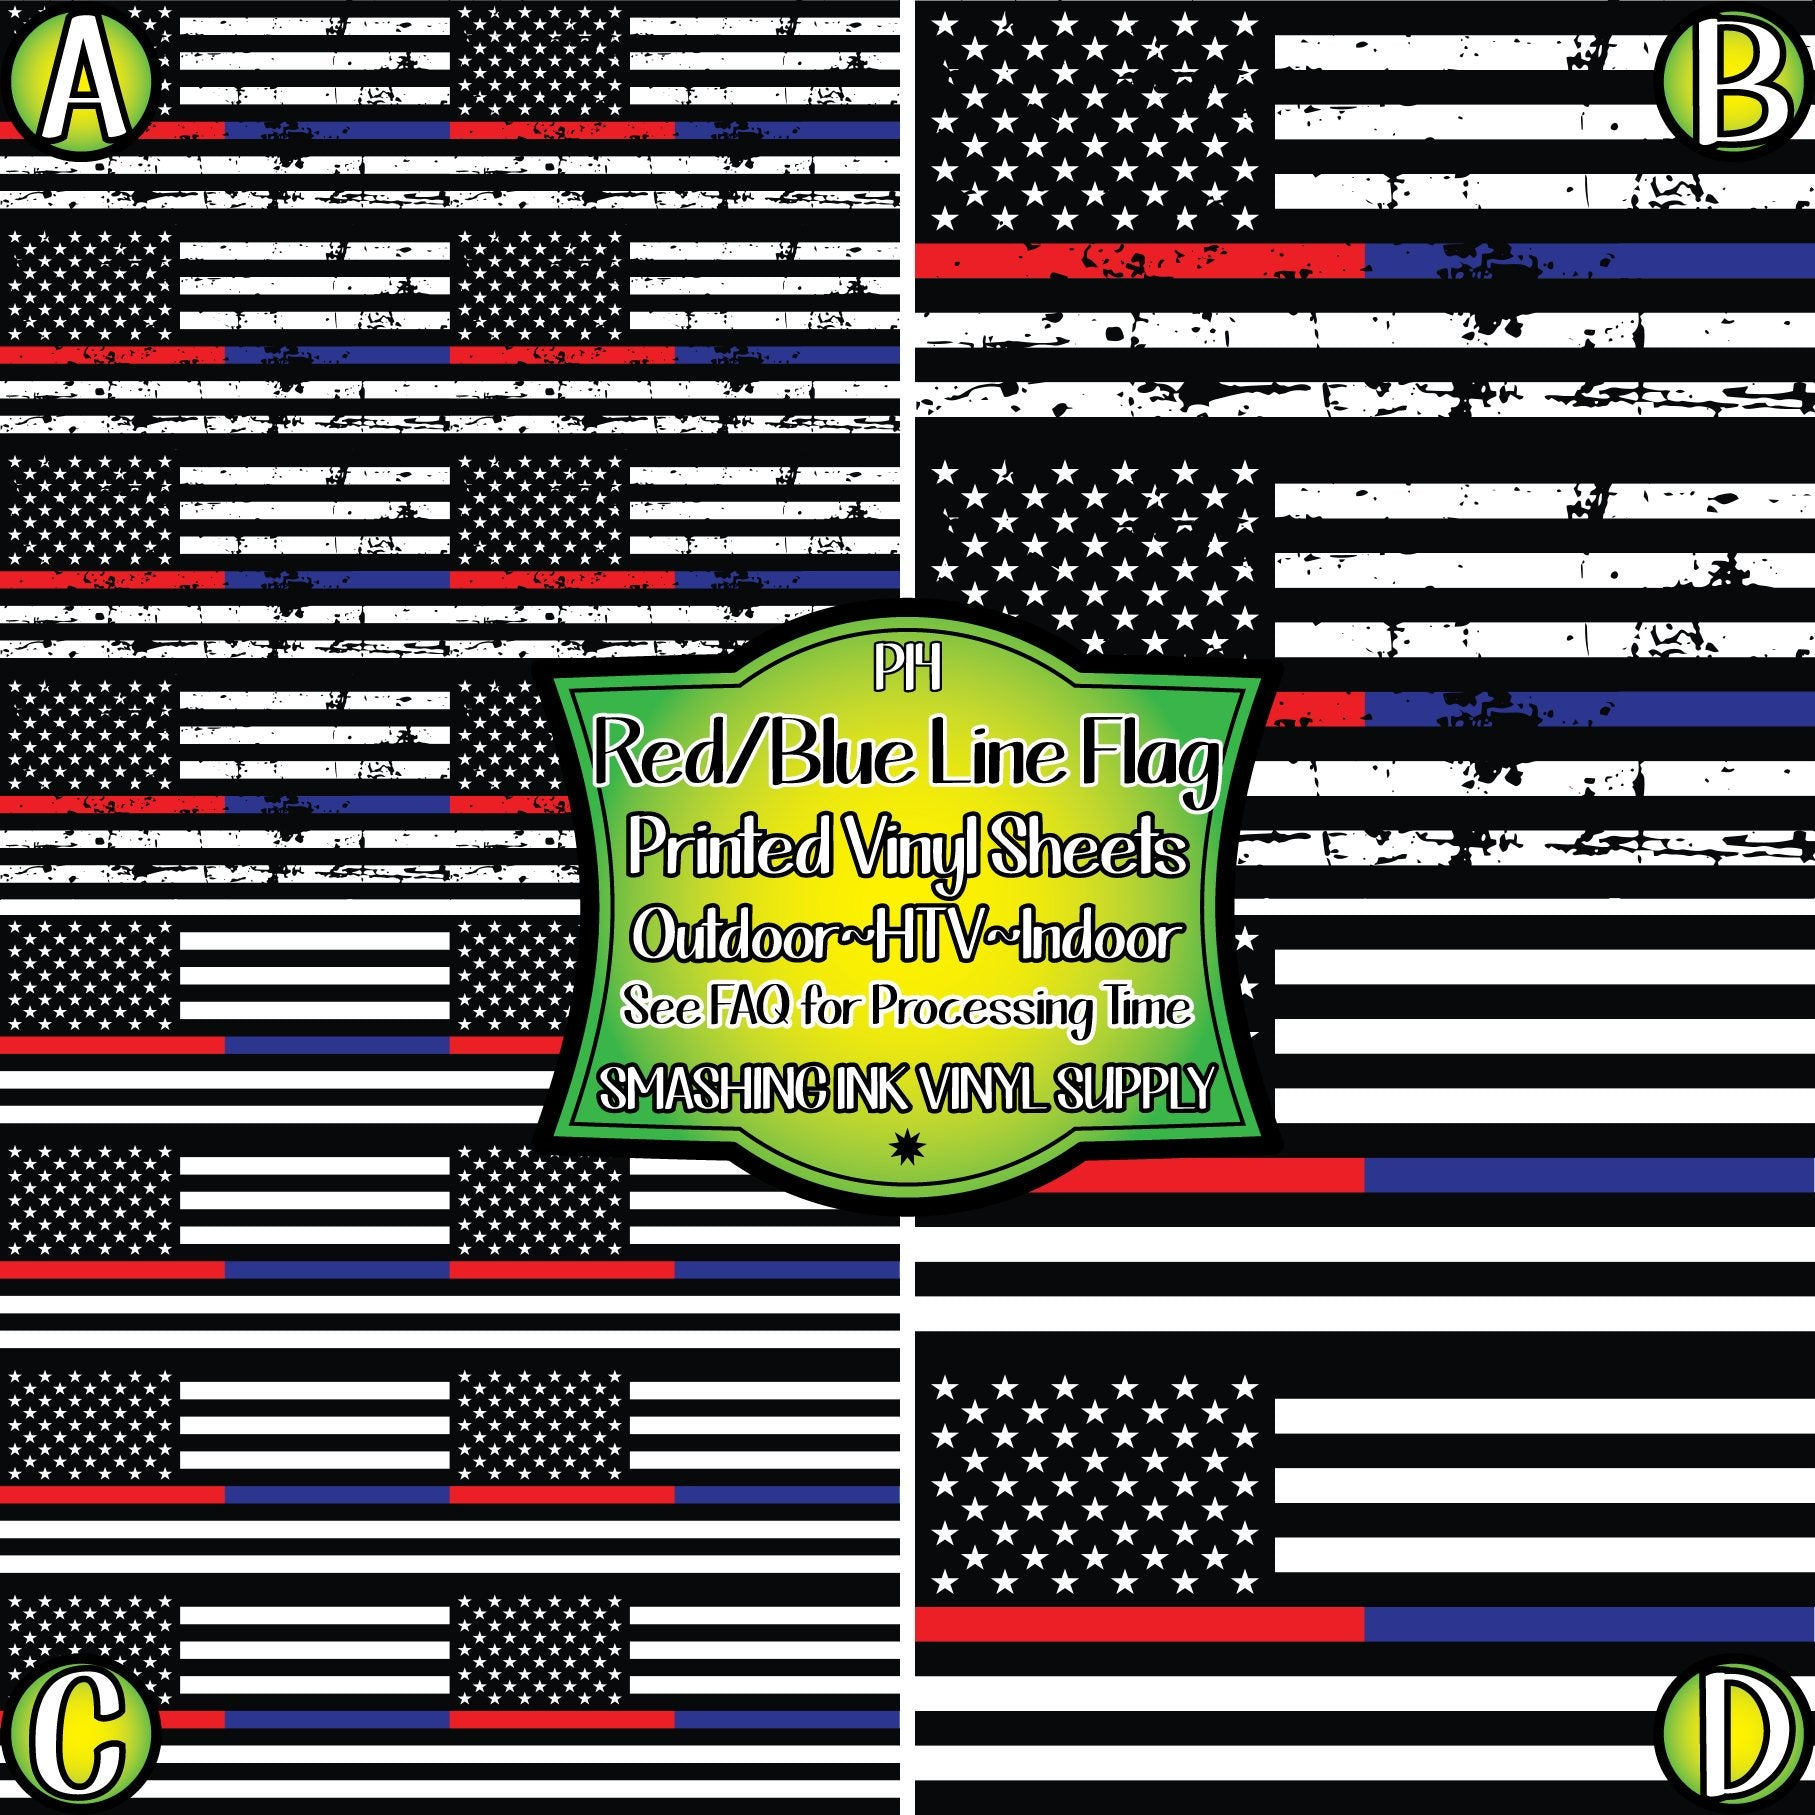 Red Blue Line Support Flag - Pattern Vinyl (READY IN 3 BUS DAYS)